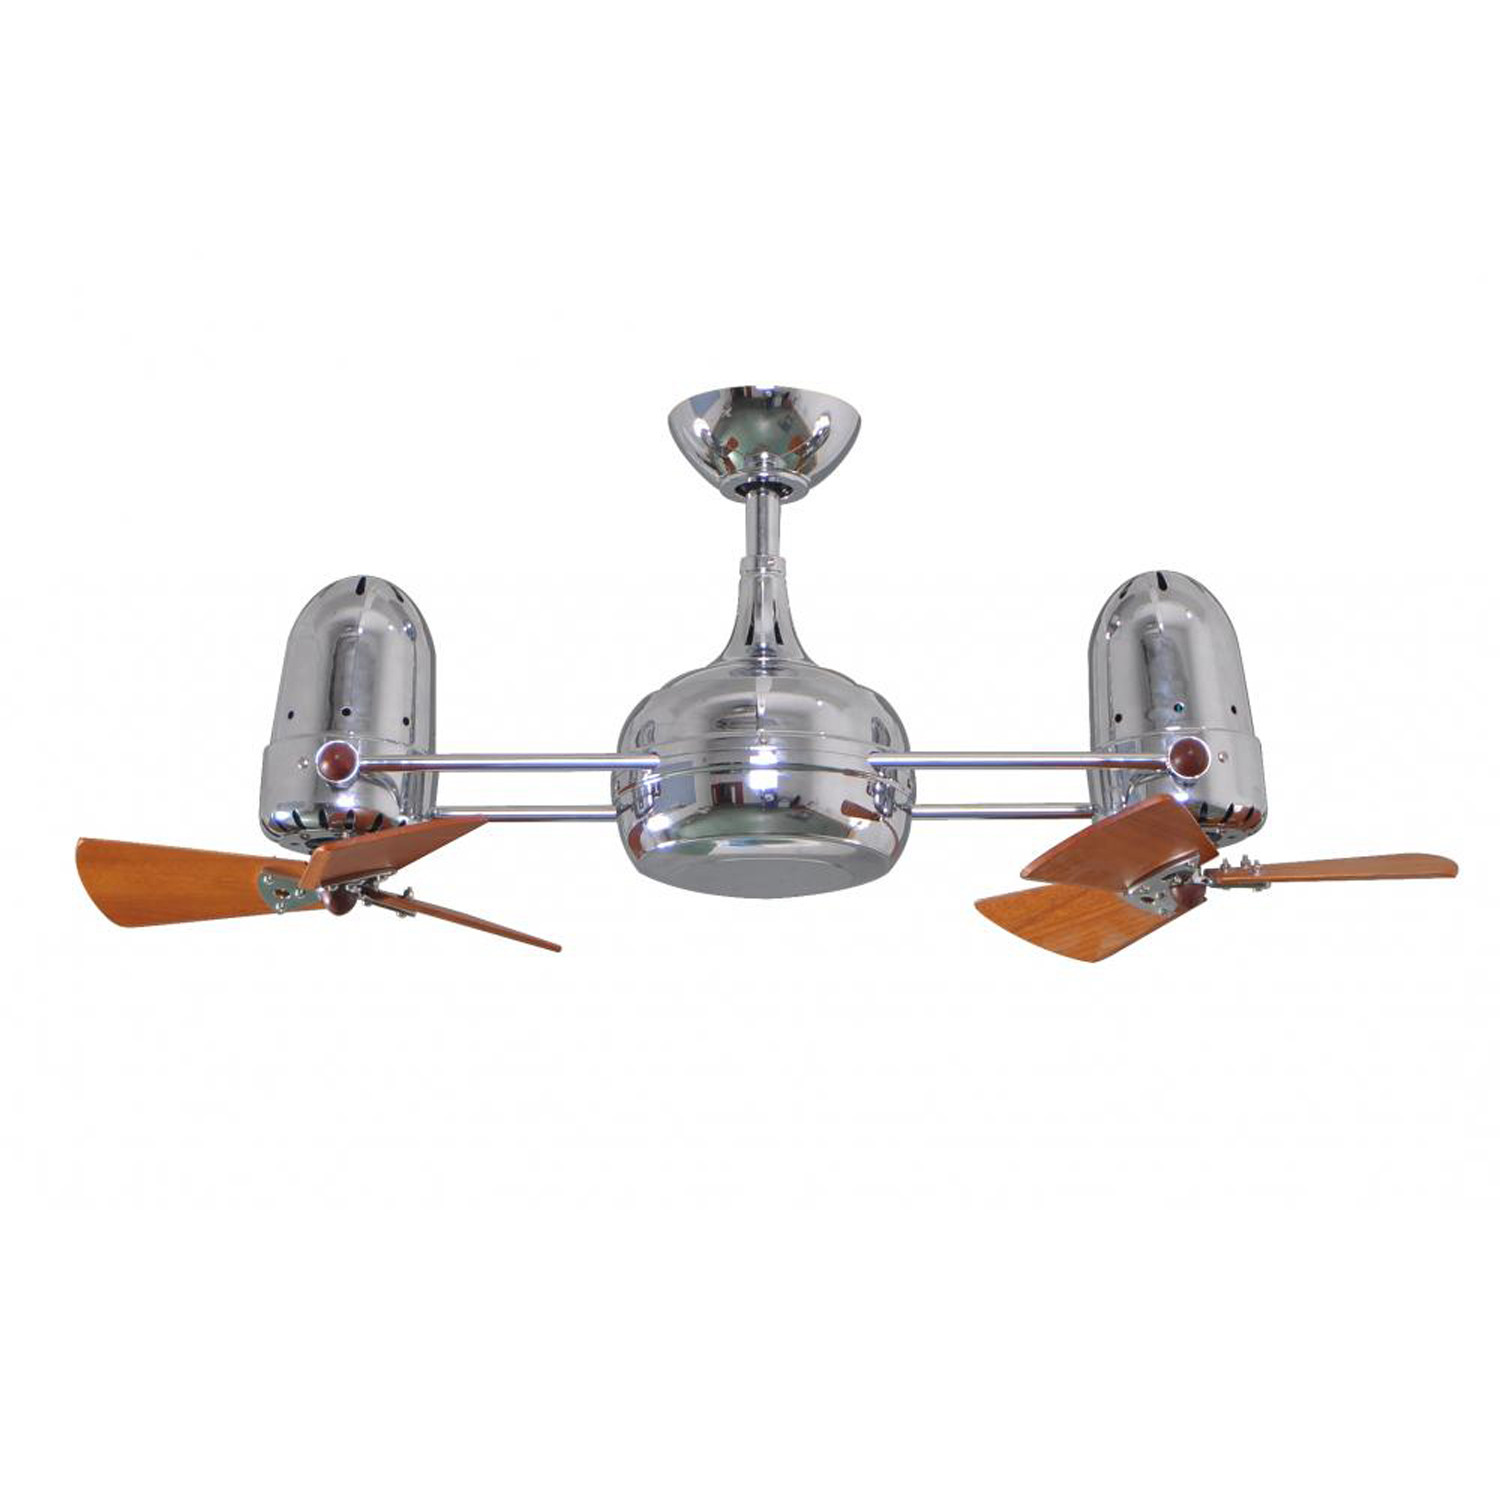 Dagny Wood Dual Rotational Ceiling Fan Brushed Nickel